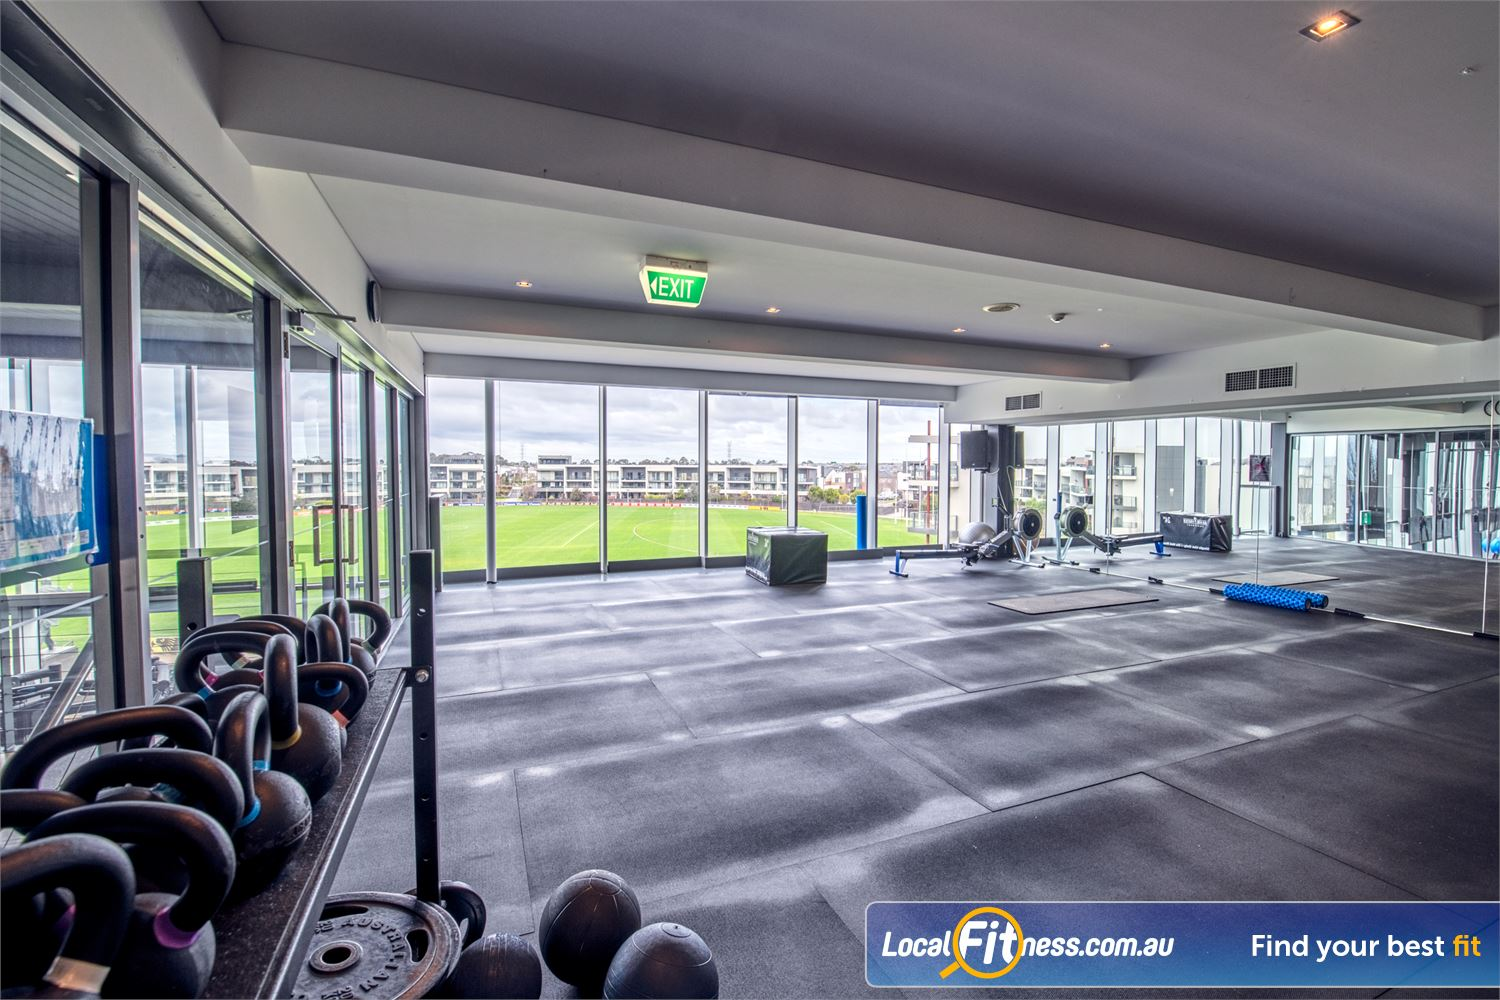 Goodlife Health Clubs Waverley Park Near Springvale Our spacious Mulgrave group fitness studio with stunning views of Waverley Park.